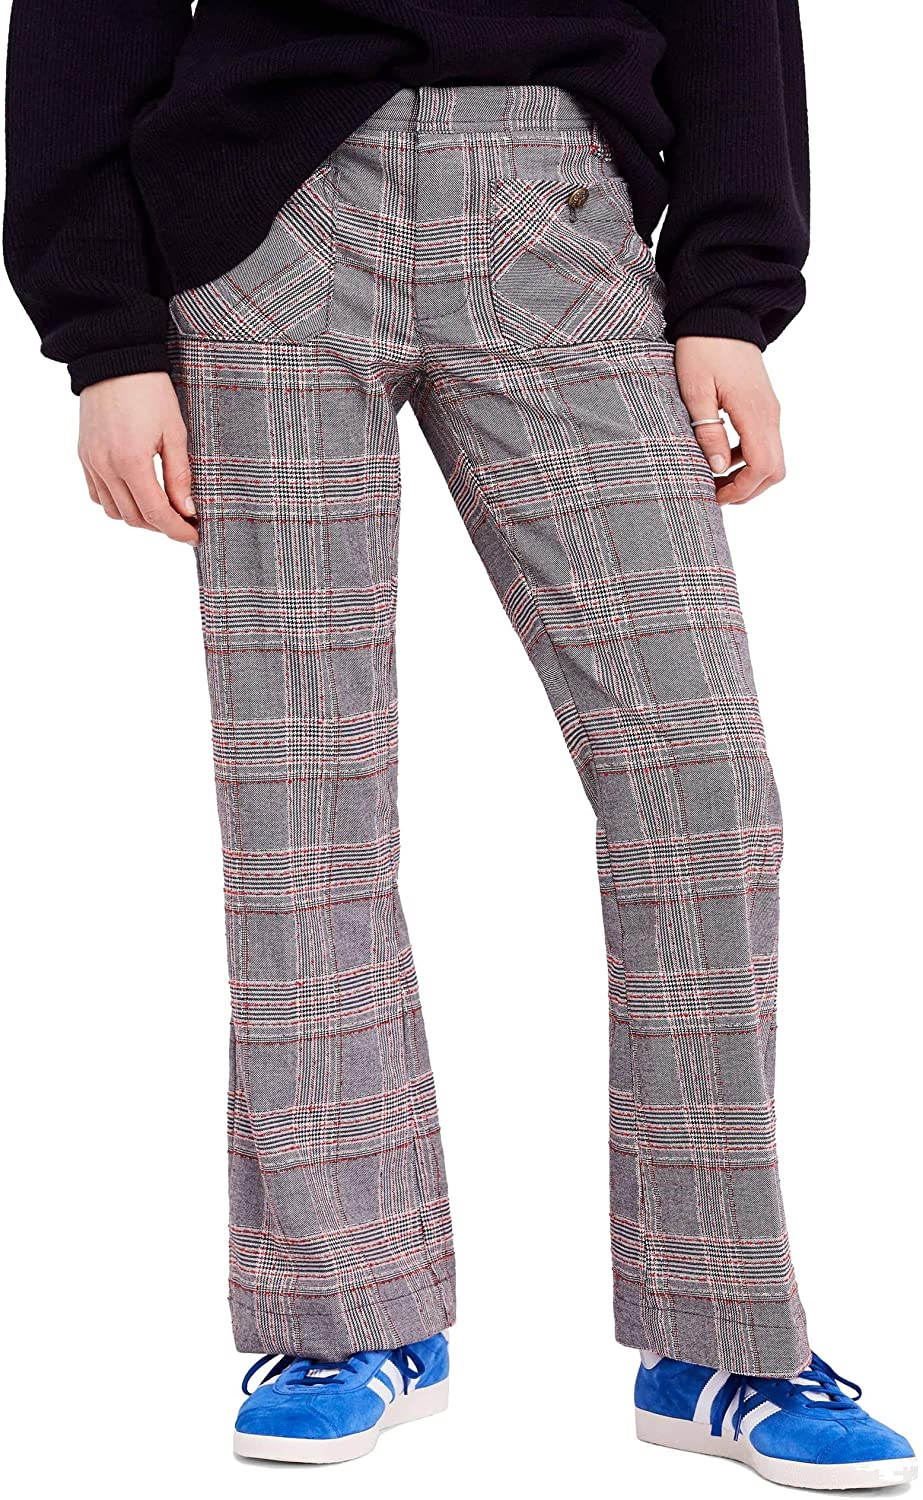 Free People Womens Plaid Flare Trouser Pants